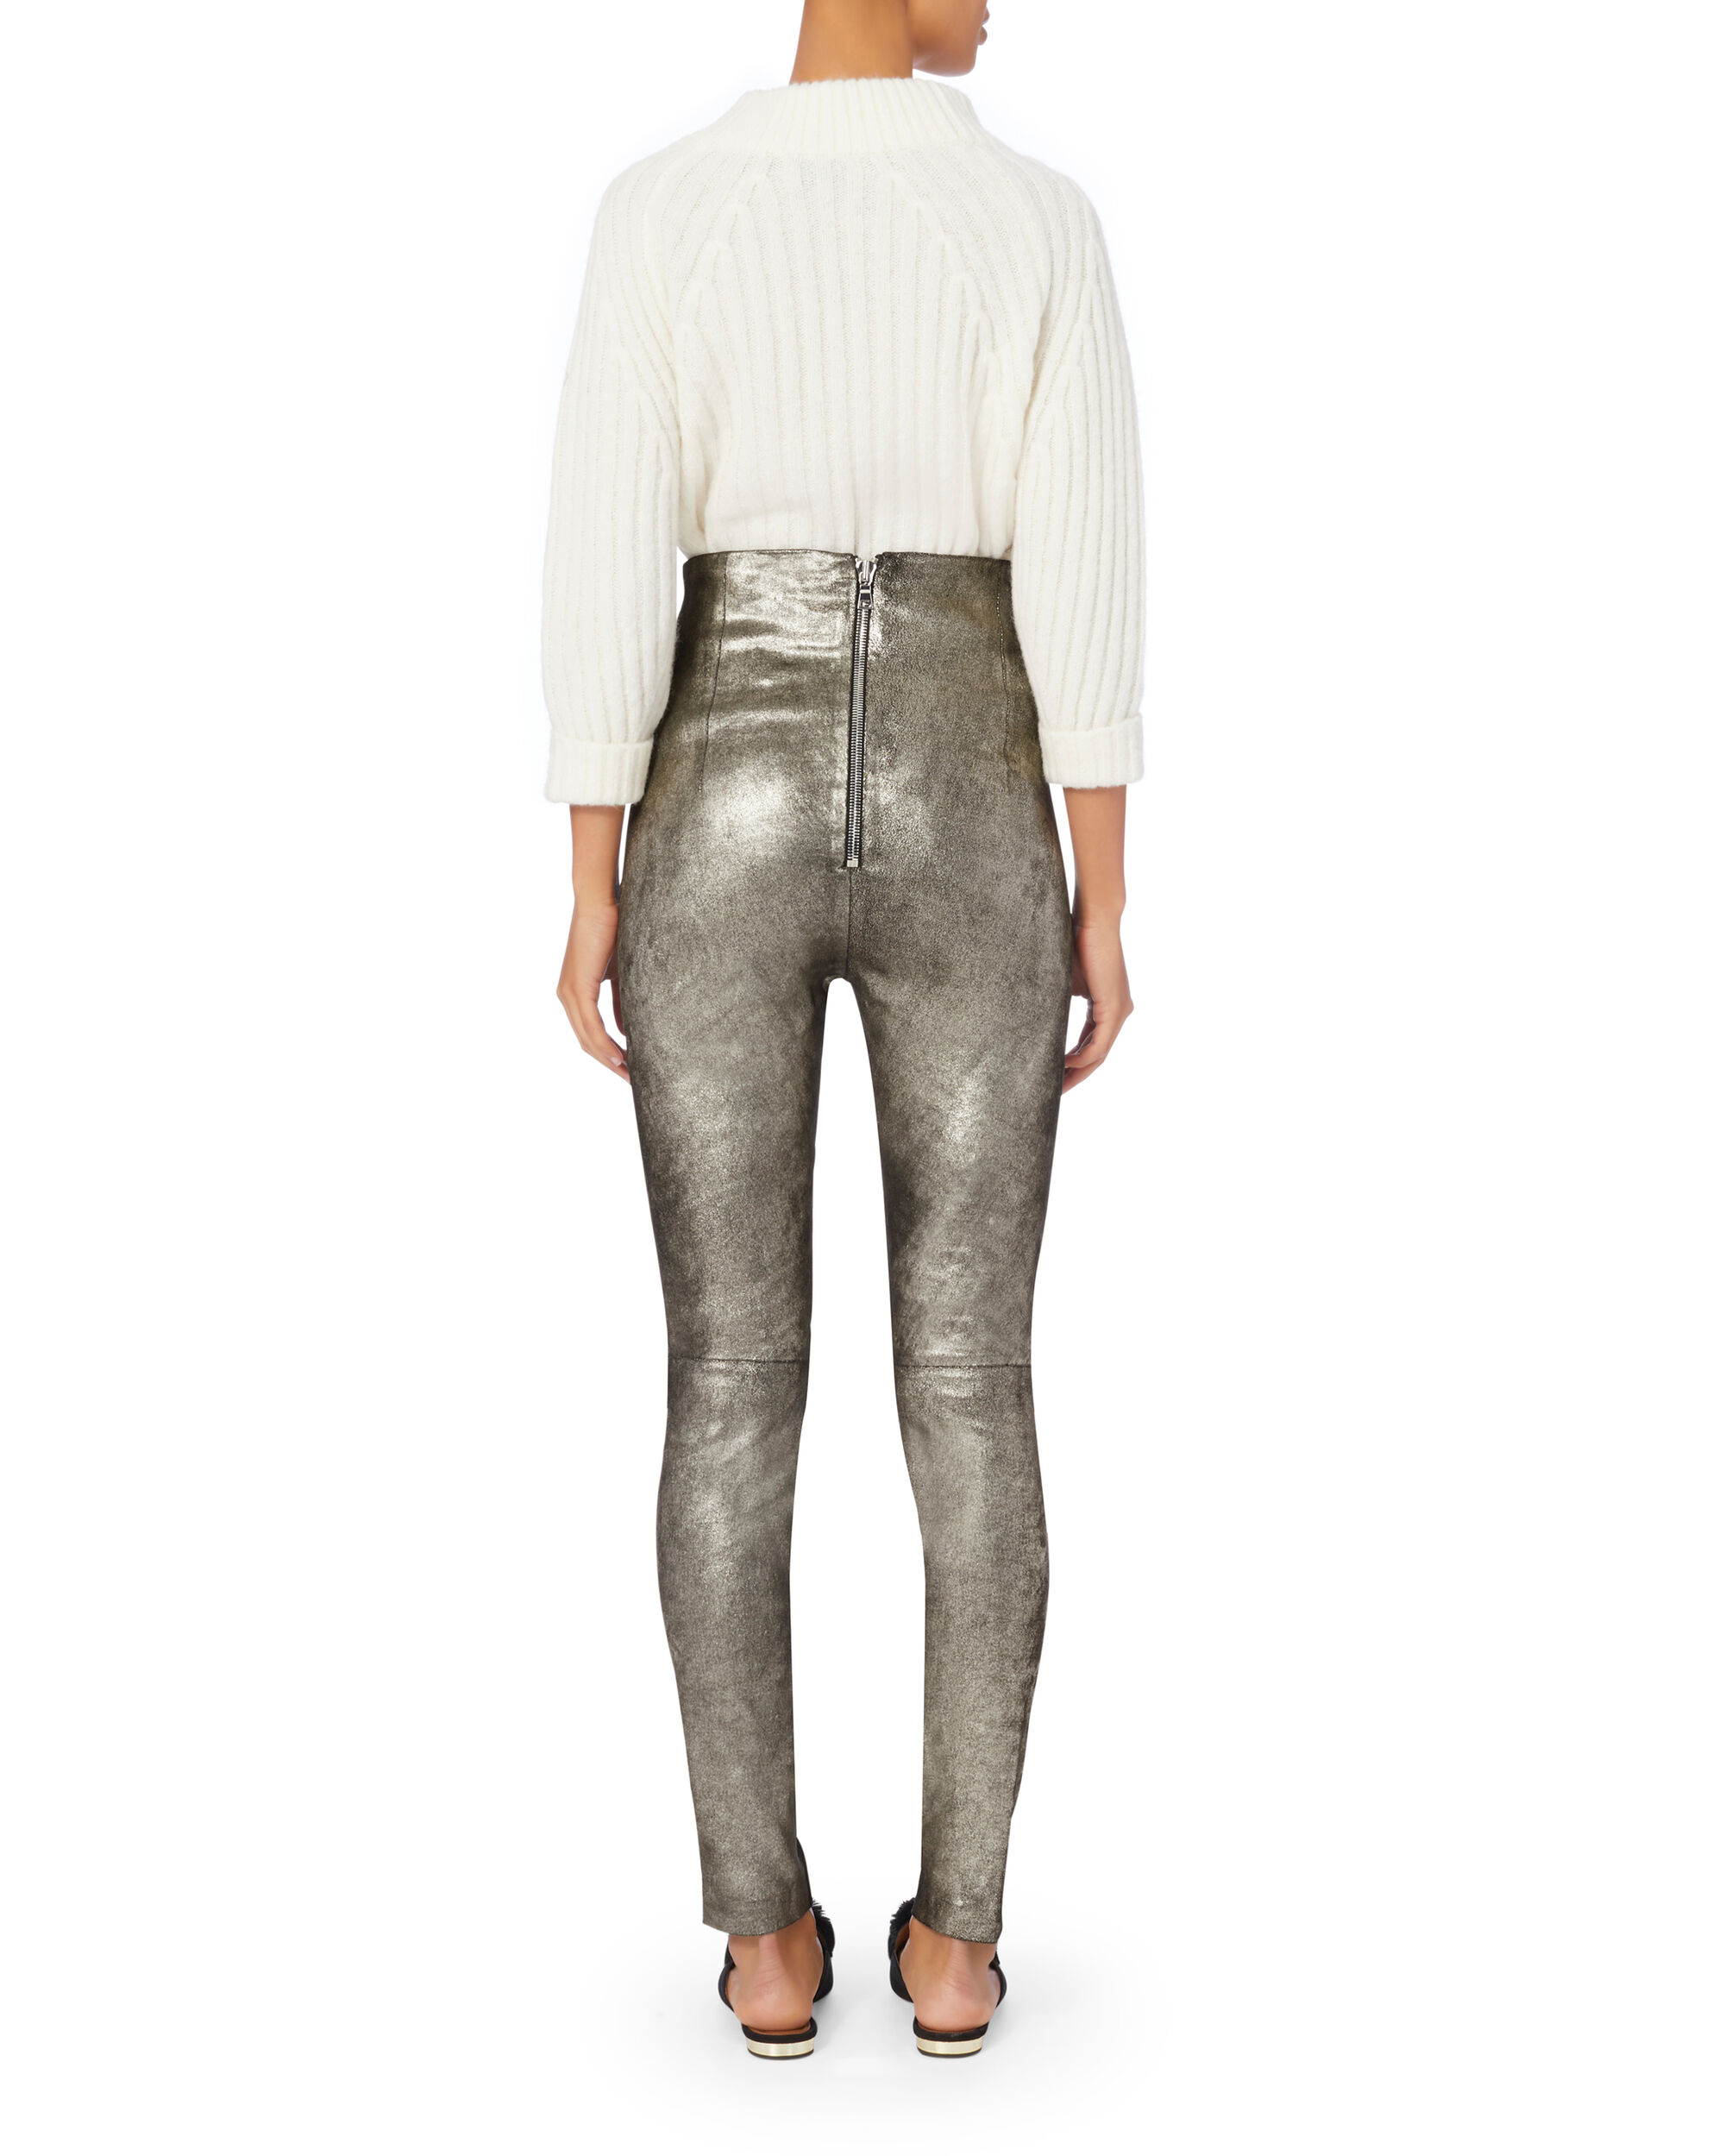 Jessica Silver Leather Pants, SILVER, hi-res